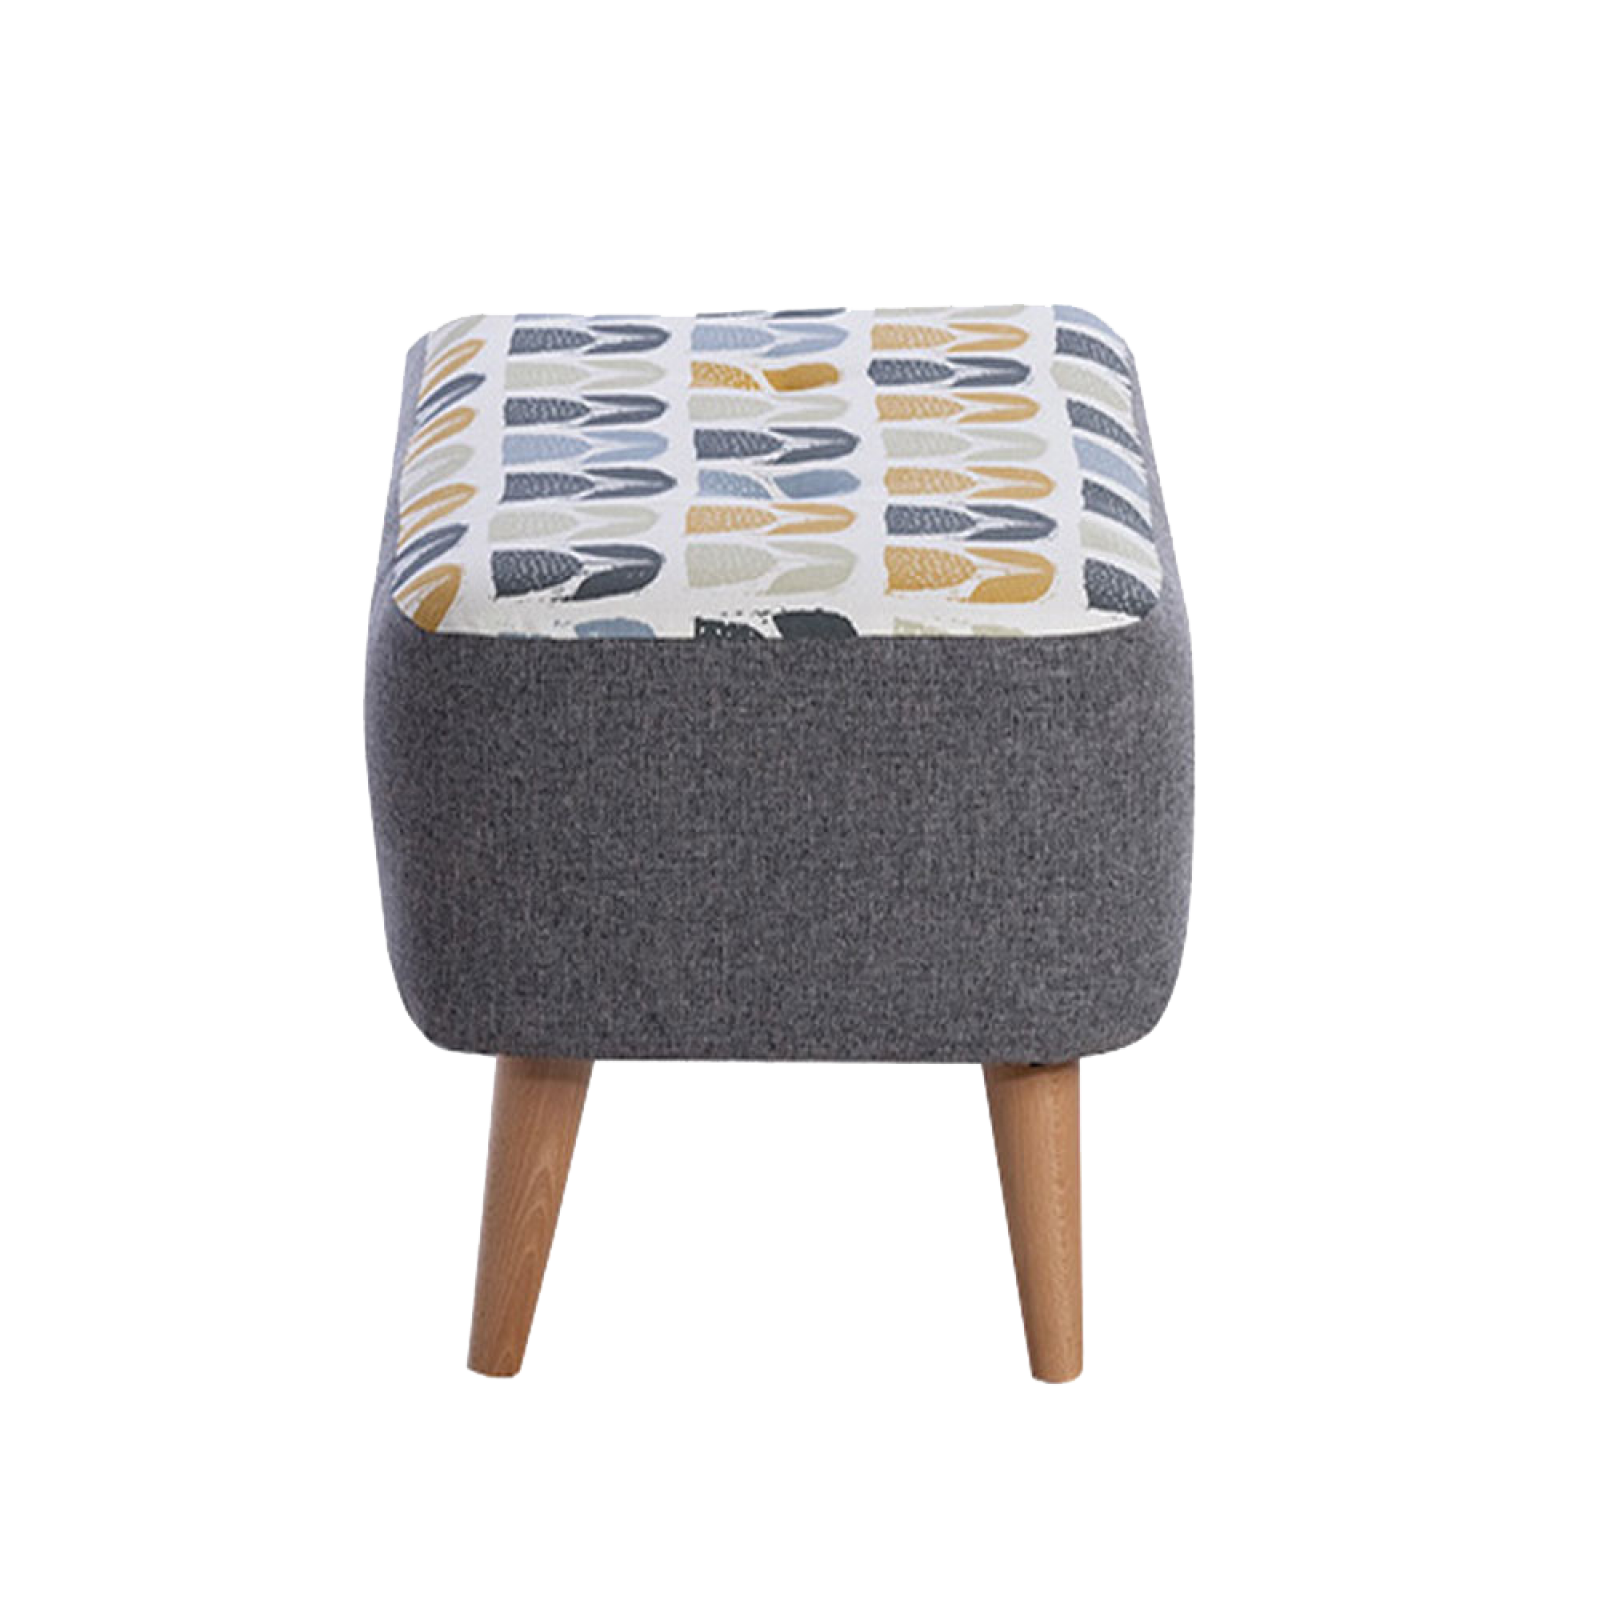 Lisbon Designer Small Bench Stool By Whitemeadow- Fabric Grade A thumbnails